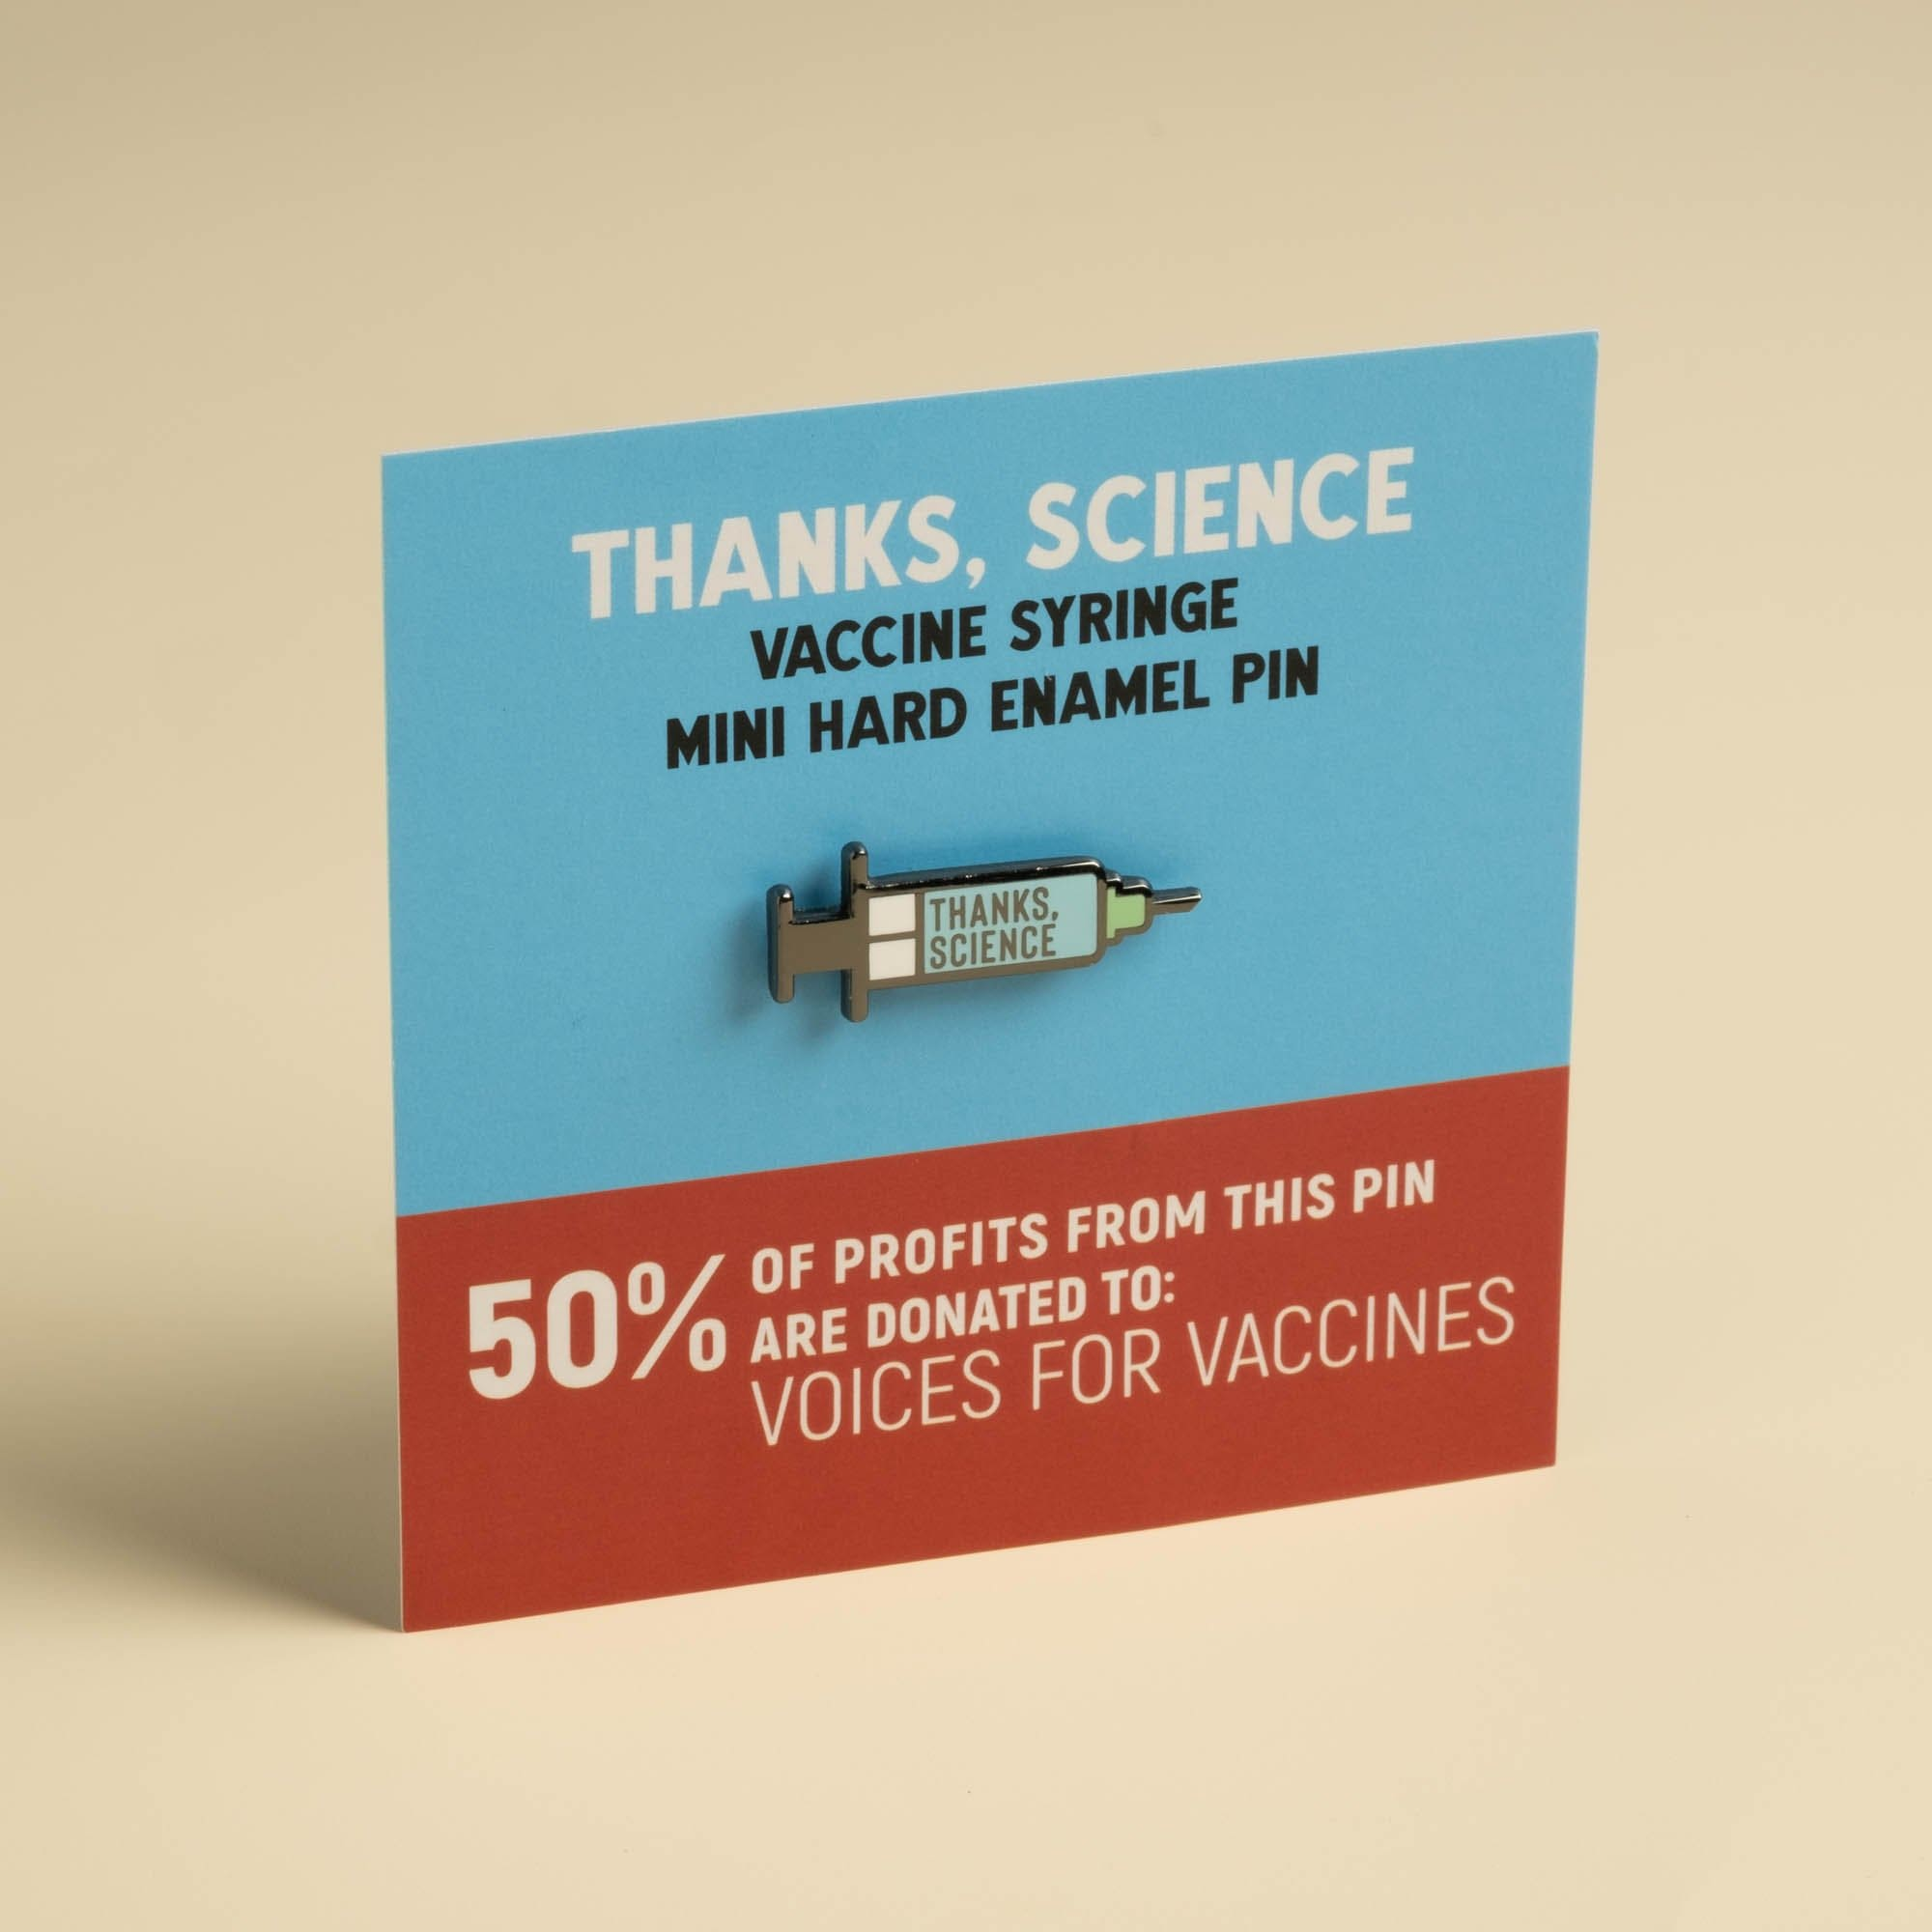 Thanks, Science - Vaccine Syringe Mini Pin